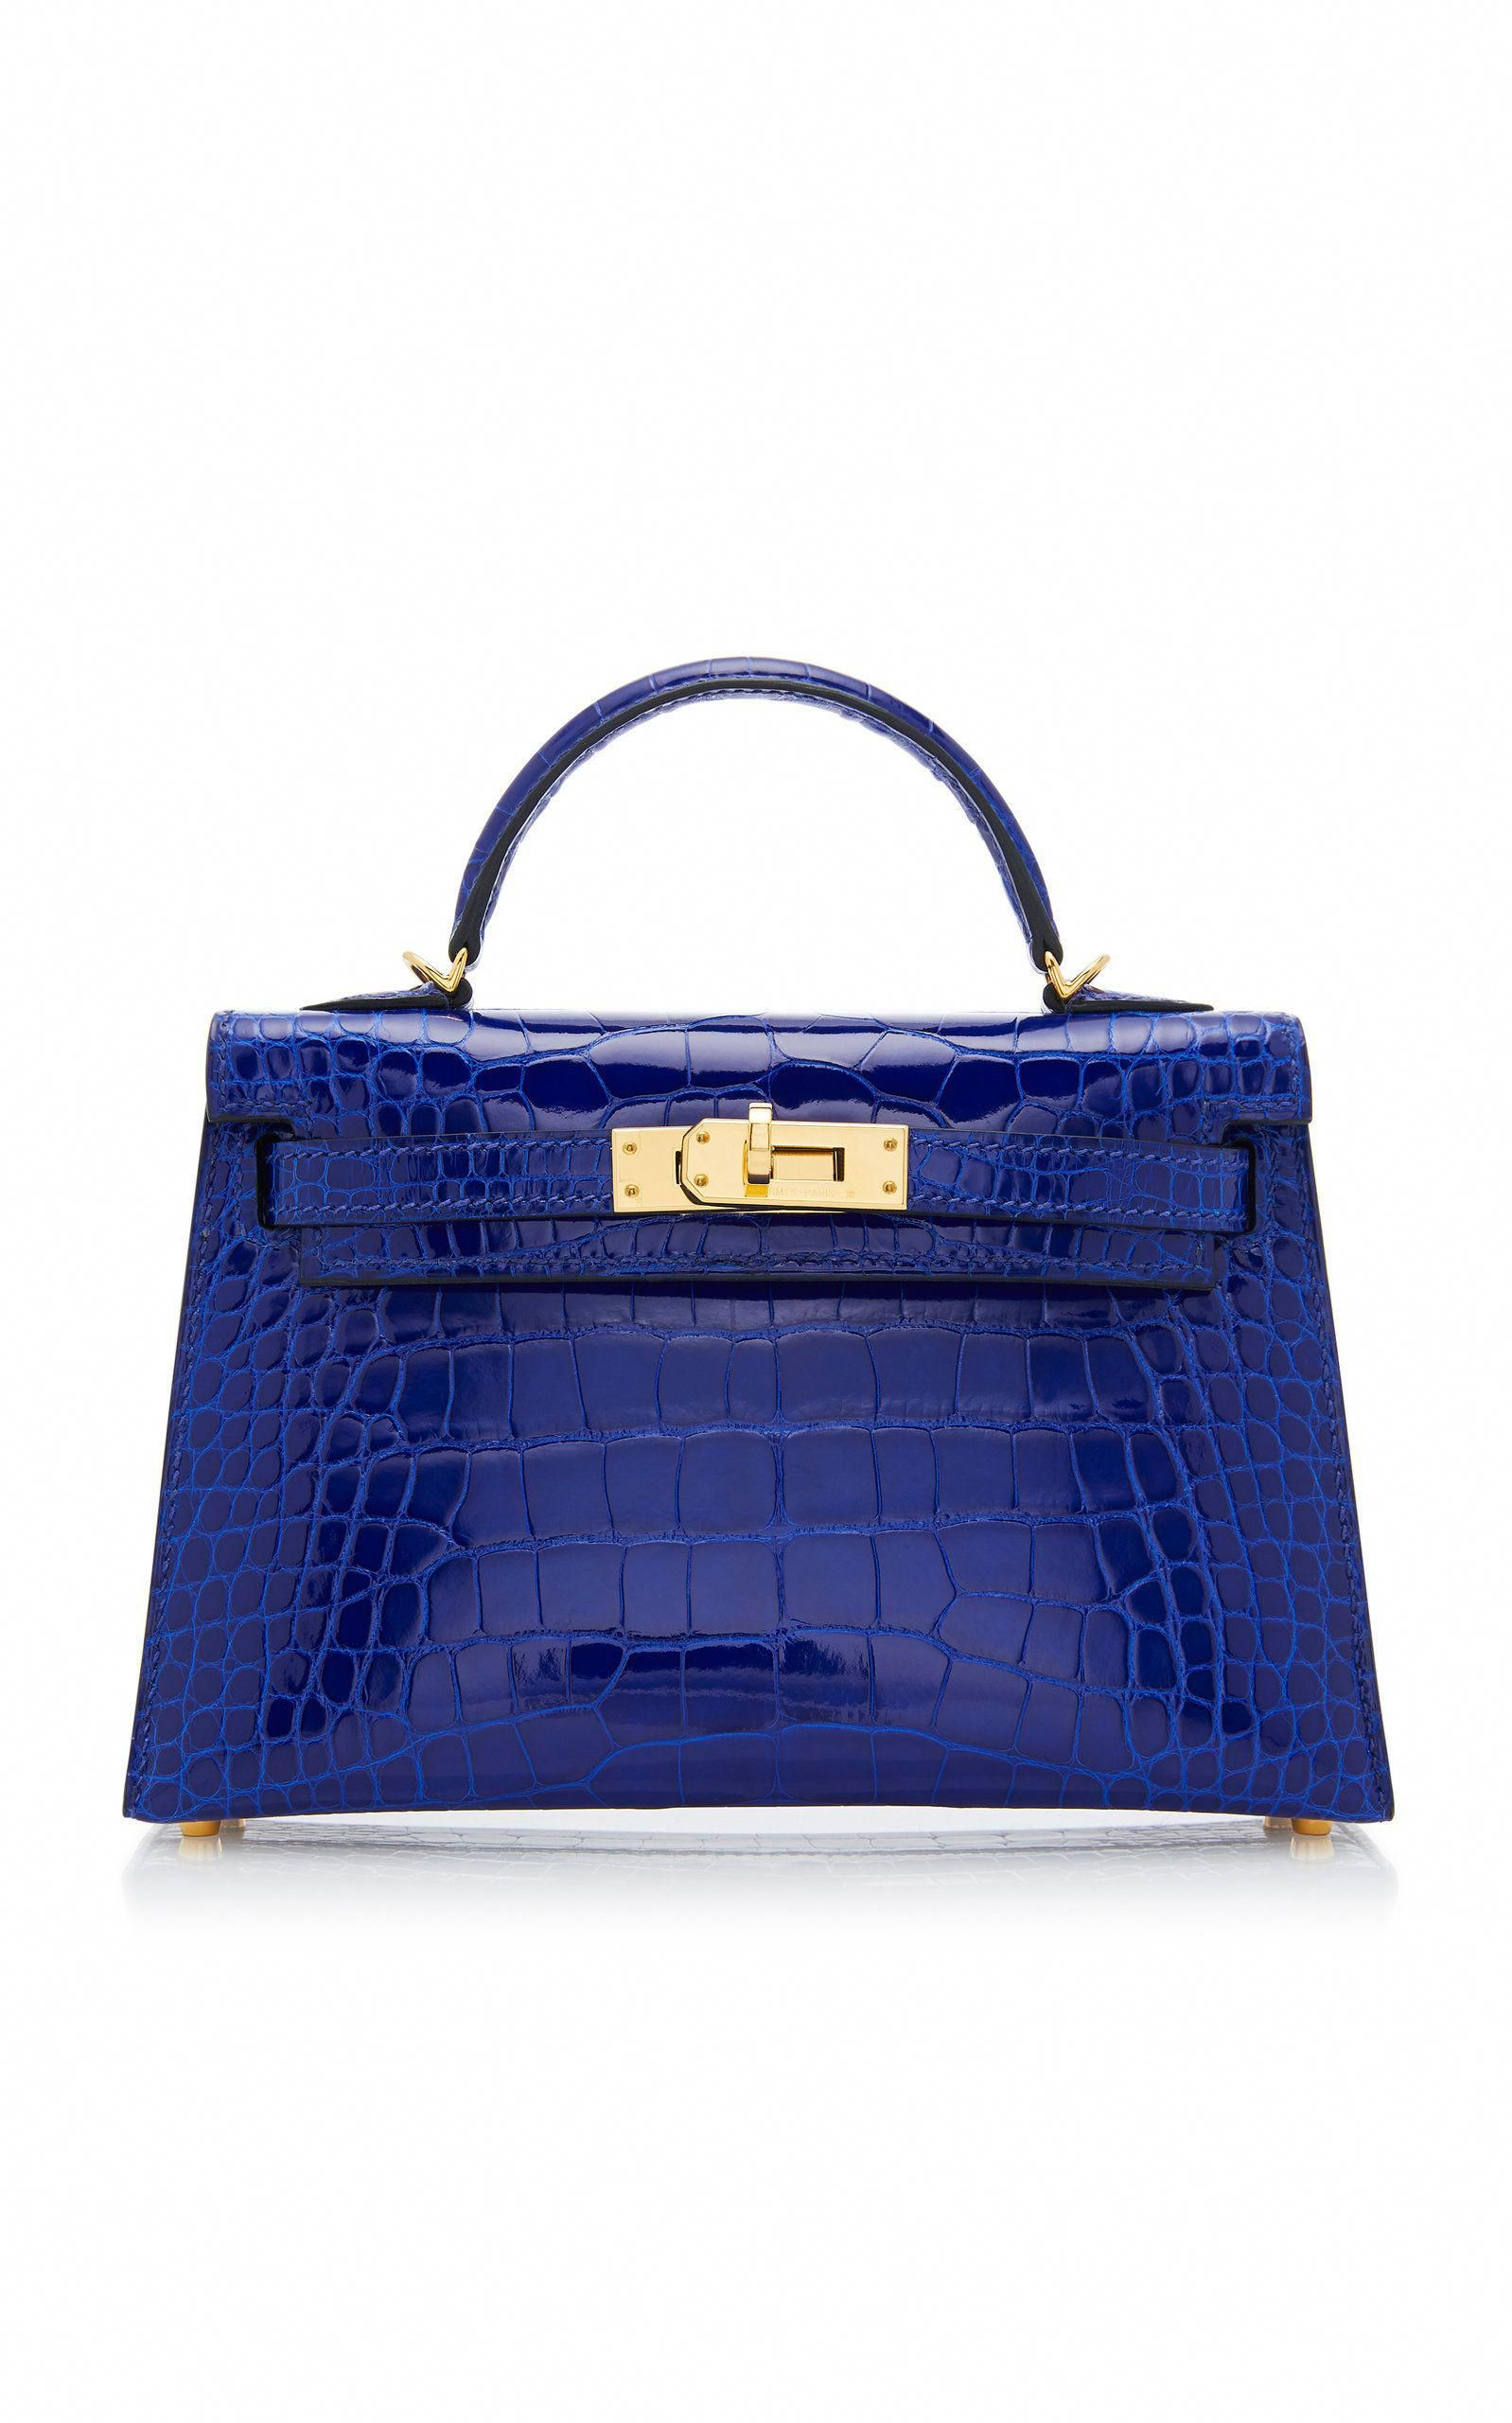 b5545a1ab81 HERMÈS VINTAGE | Hermes 20cm Blue Electric Alligator Mini Kelly II -  Electric Blue | CAD